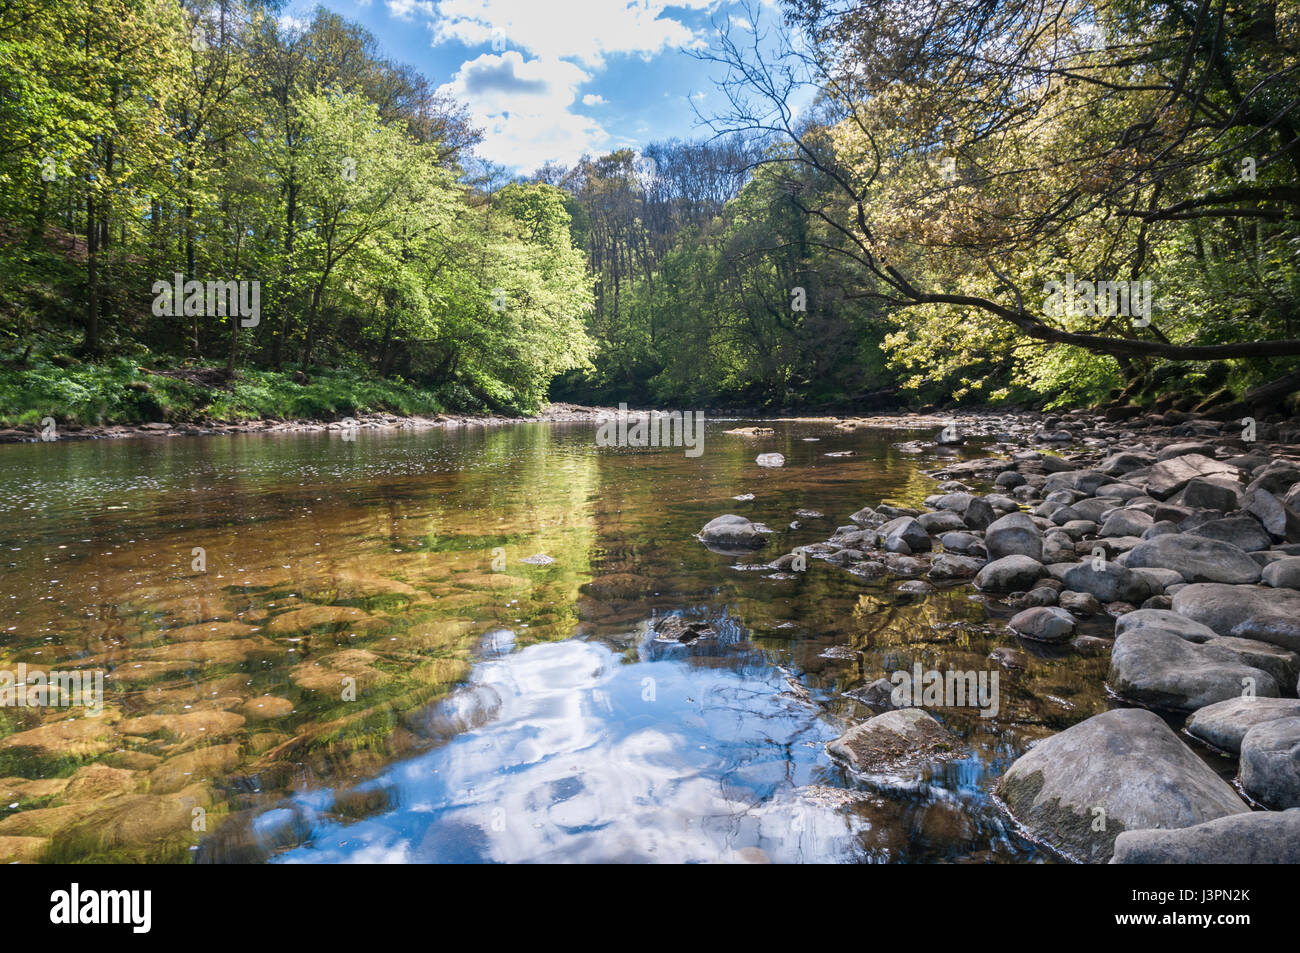 River Ure flowing through Hackfall Wood, North Yorkshire, England Stock Photo